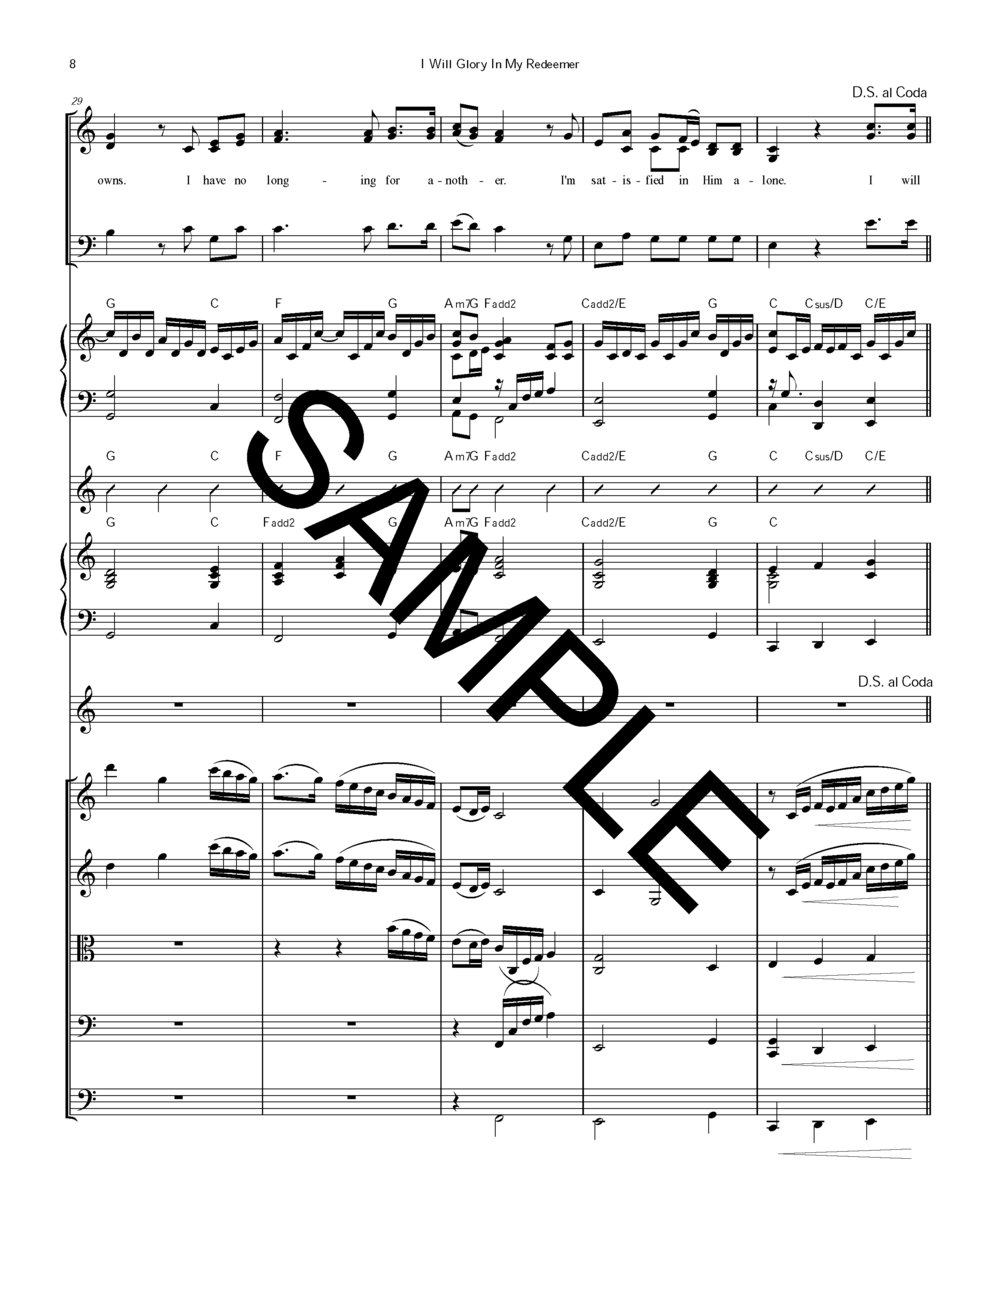 Sample I Will Glory in My Redeemer #196 Strngs Ob Piano Chrd Chrt Orgn M Rice arr_Page_21.jpg